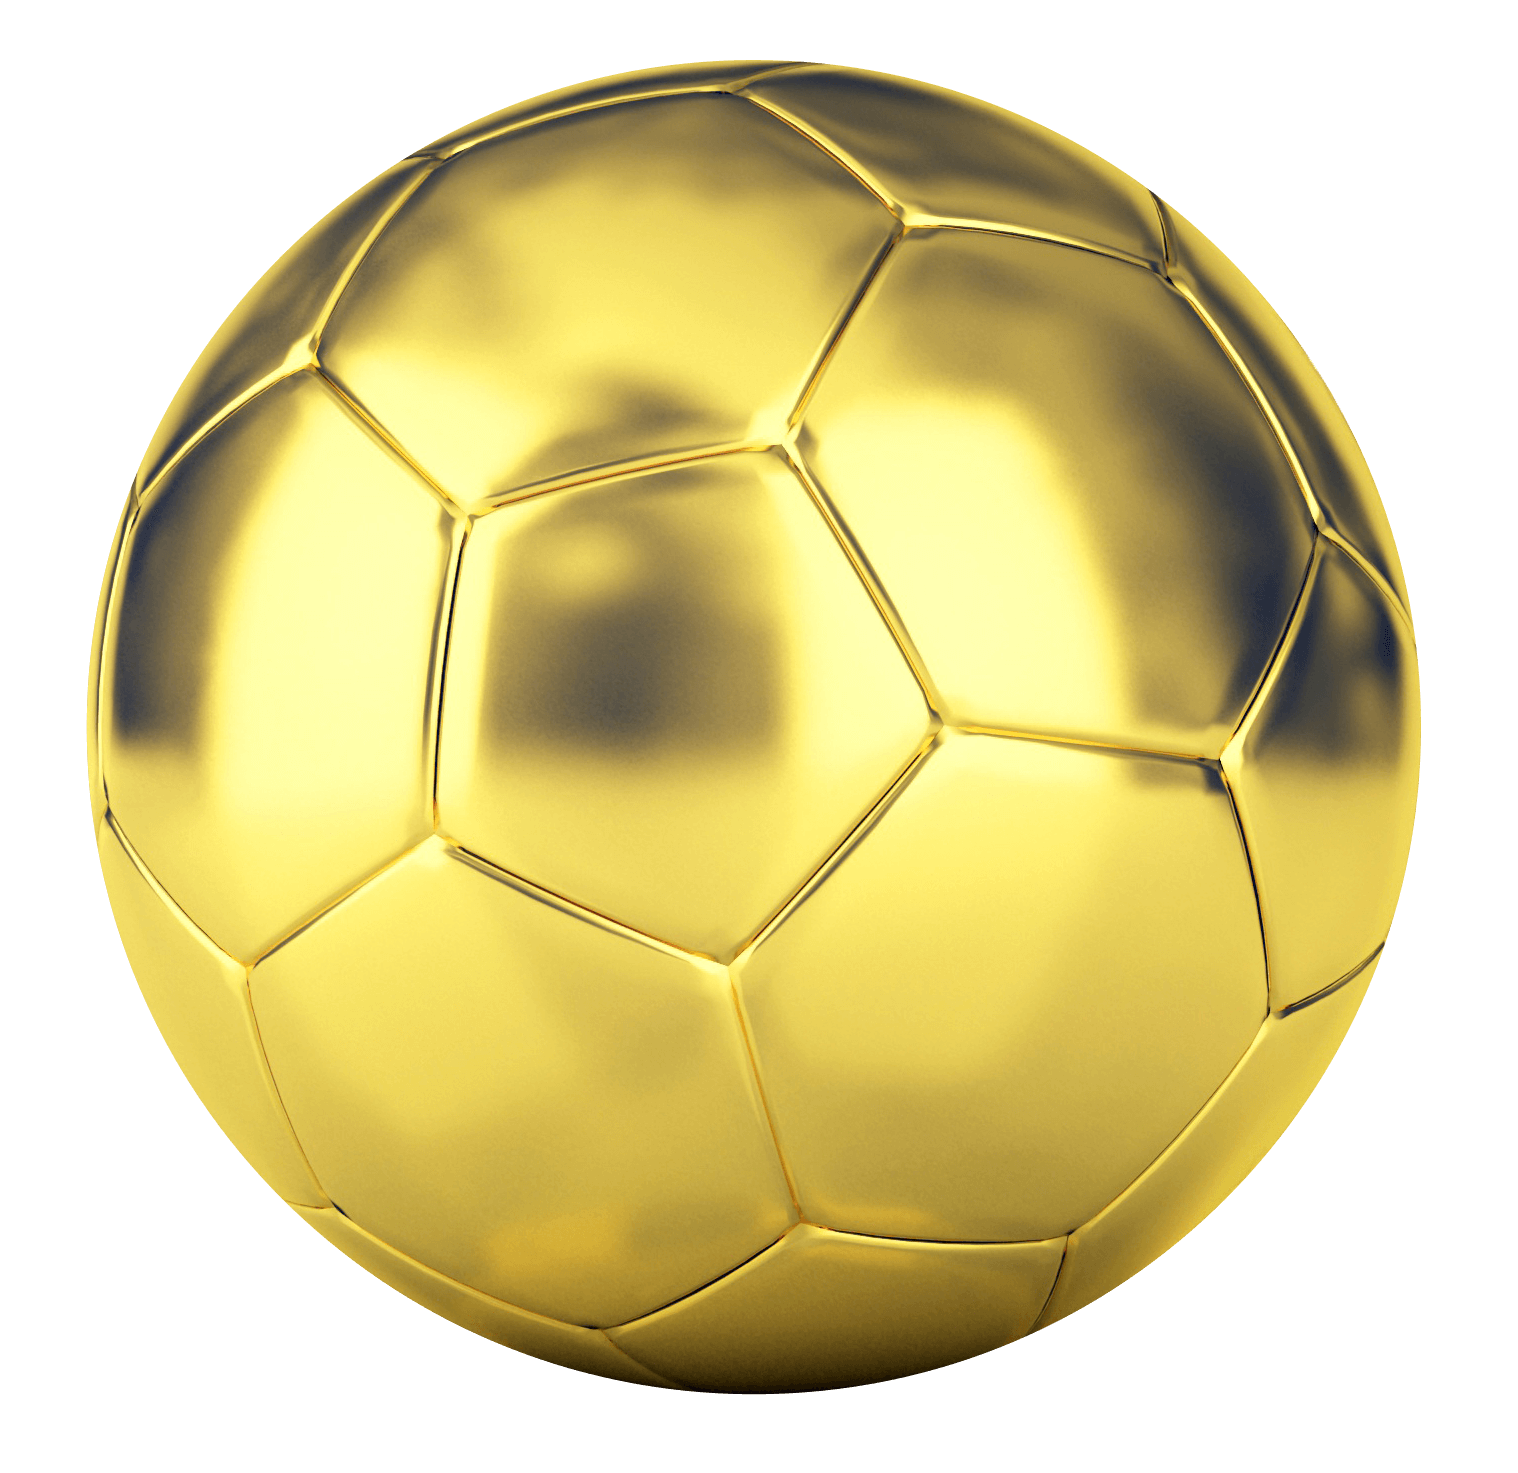 Ball png. Soccer image arts banner royalty free download